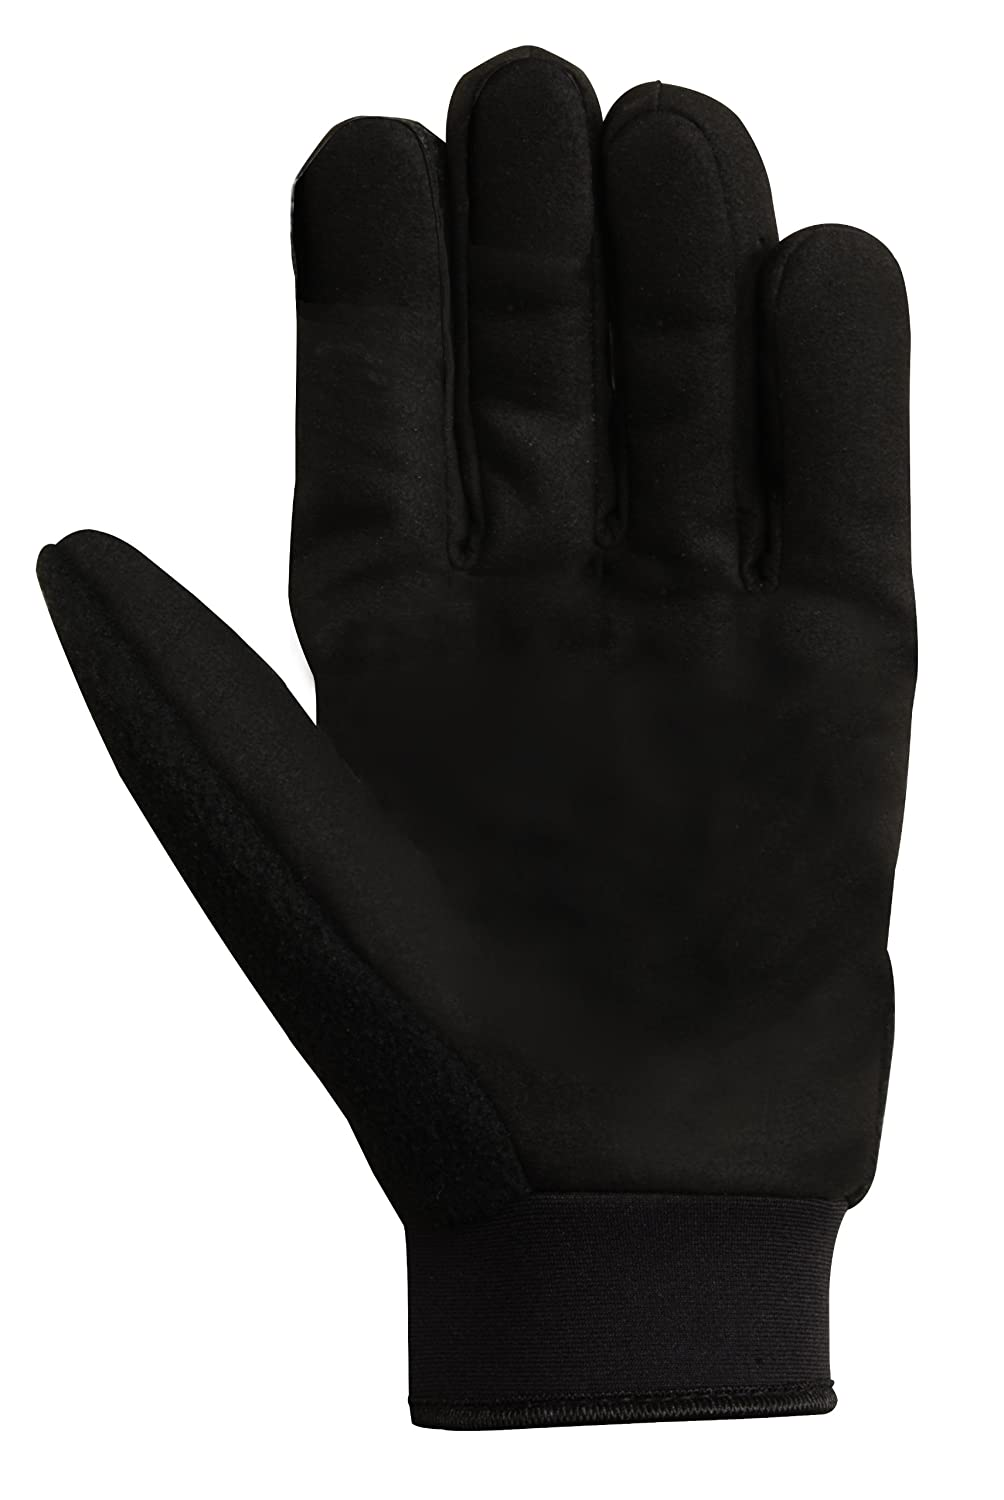 Insulated leather work gloves amazon - Wells Lamont Synthetic Leather Work Gloves Insulated Medium 7740m Work Gloves Amazon Com